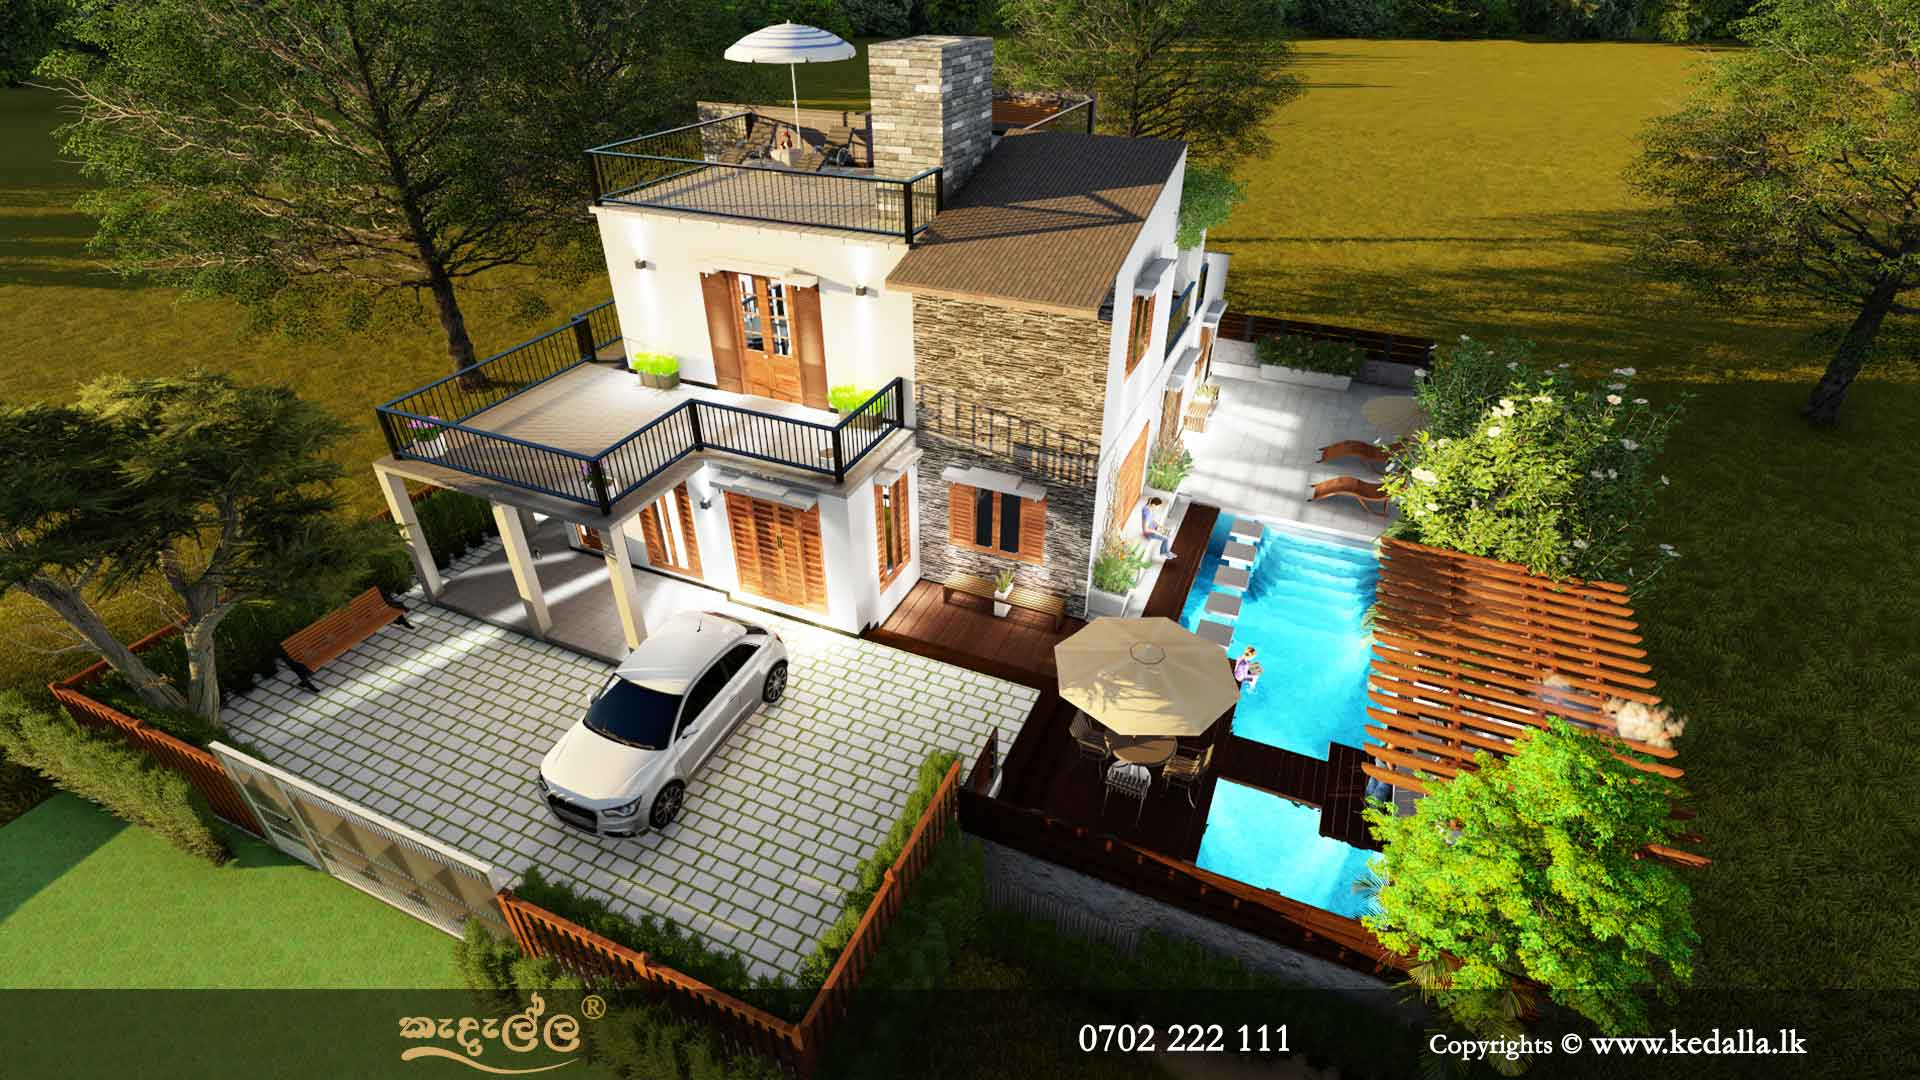 Architects in Kandy designed two story house with roof/terrace.Best home plans in Sri Lanka